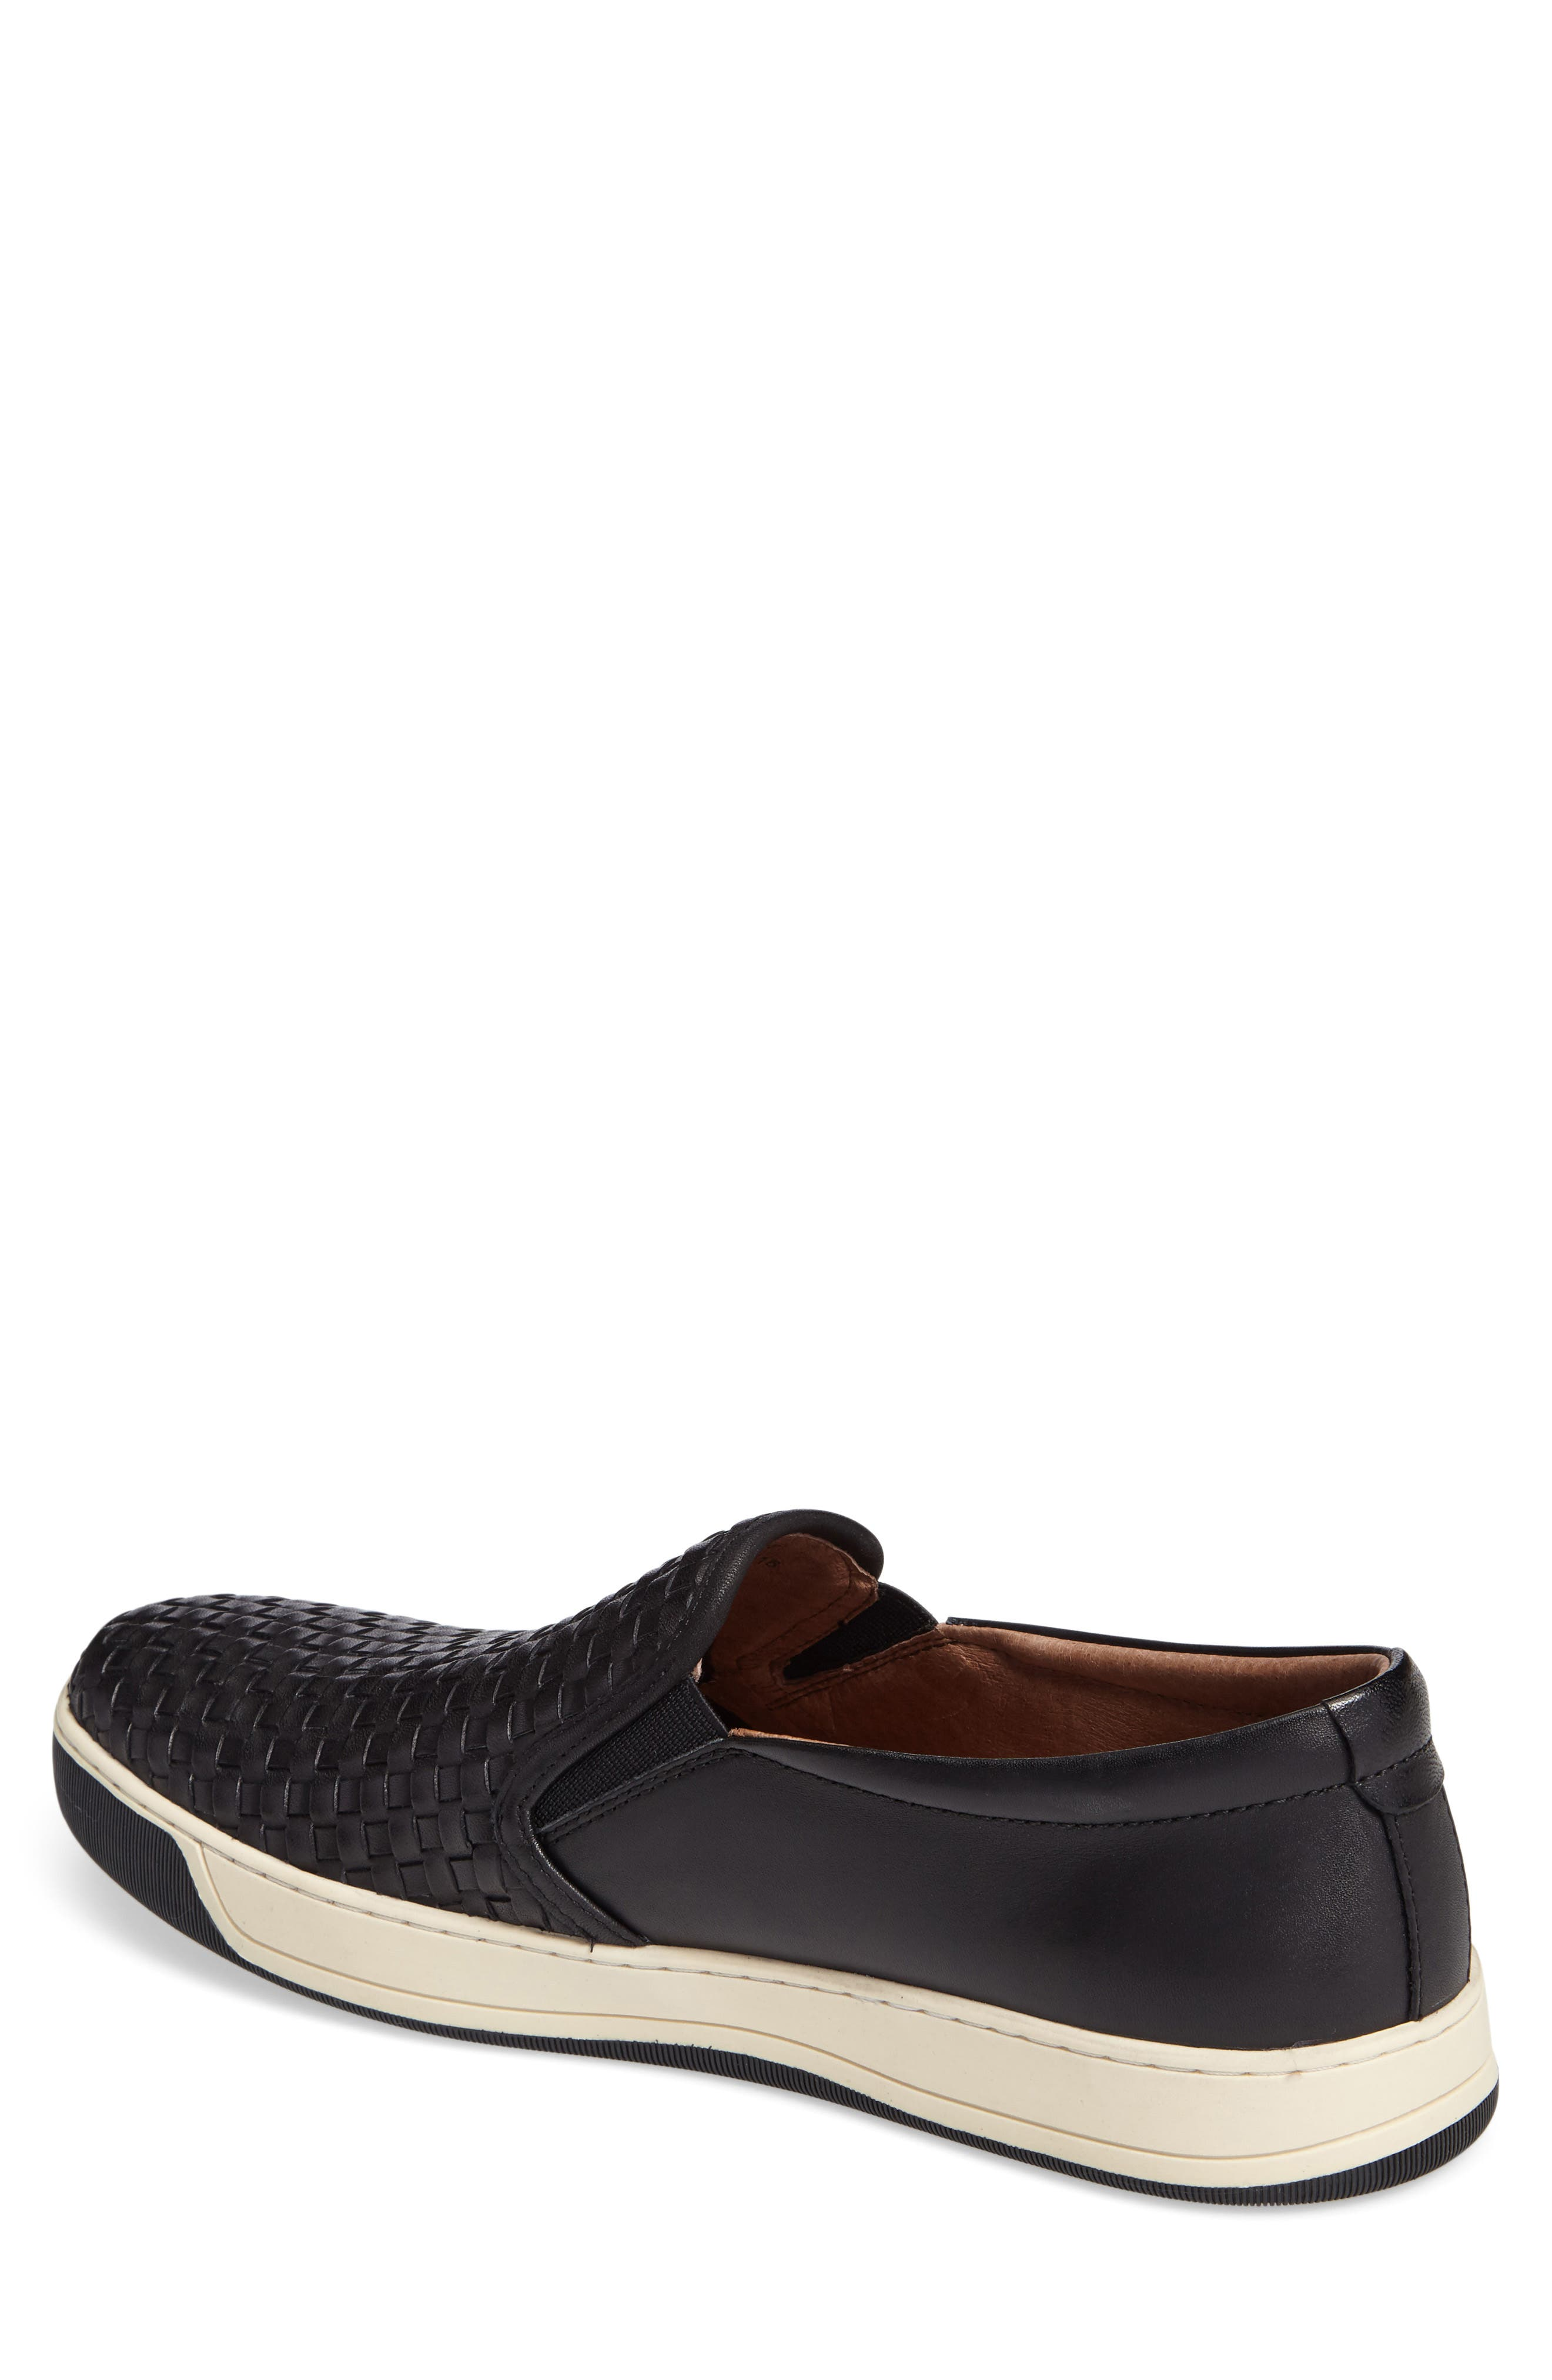 J&M 1850, Allister Slip-On Sneaker, Alternate thumbnail 2, color, BLACK LEATHER